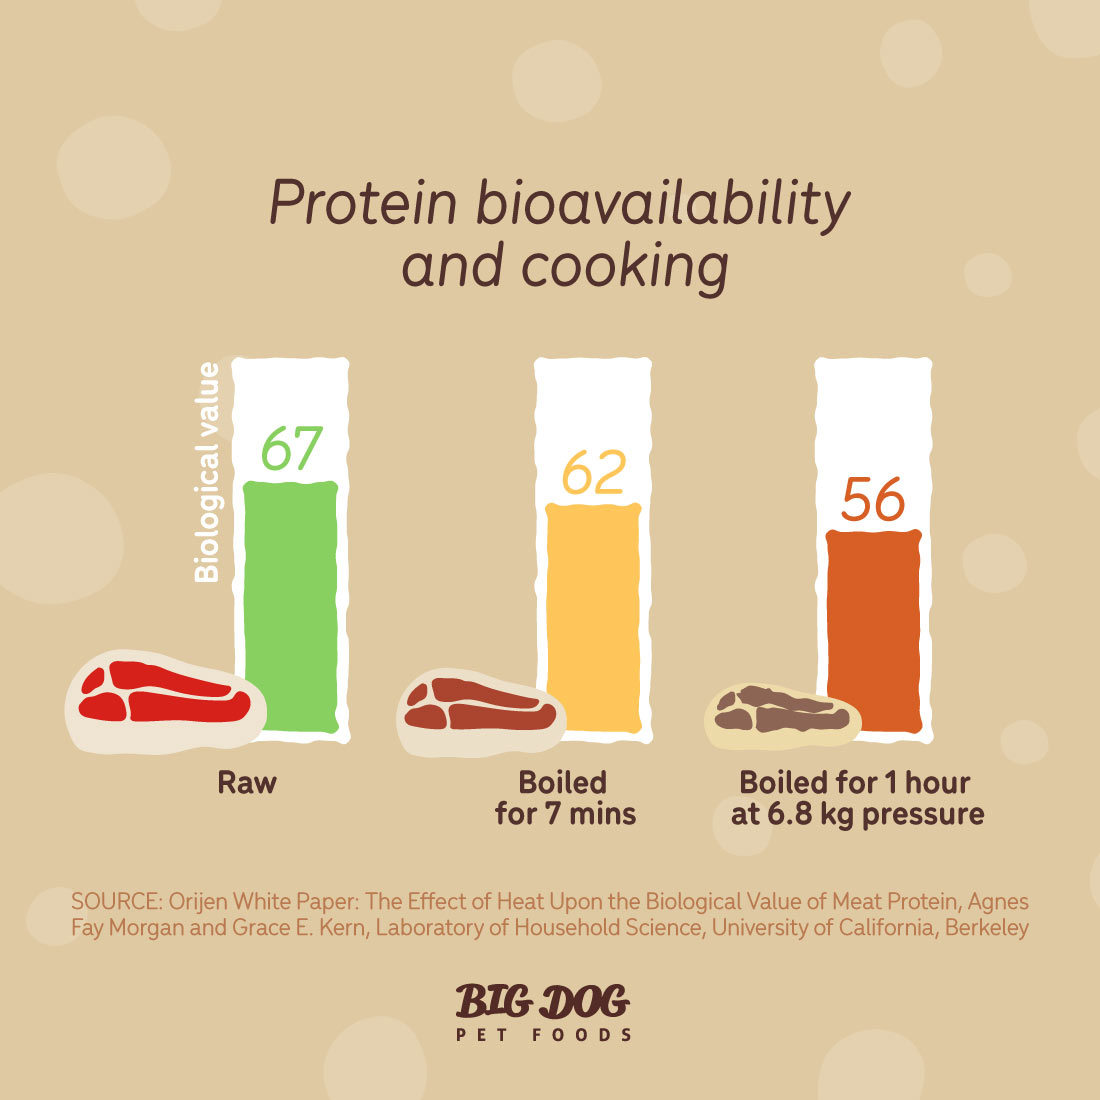 protein bioavailability and cooking in pet foods